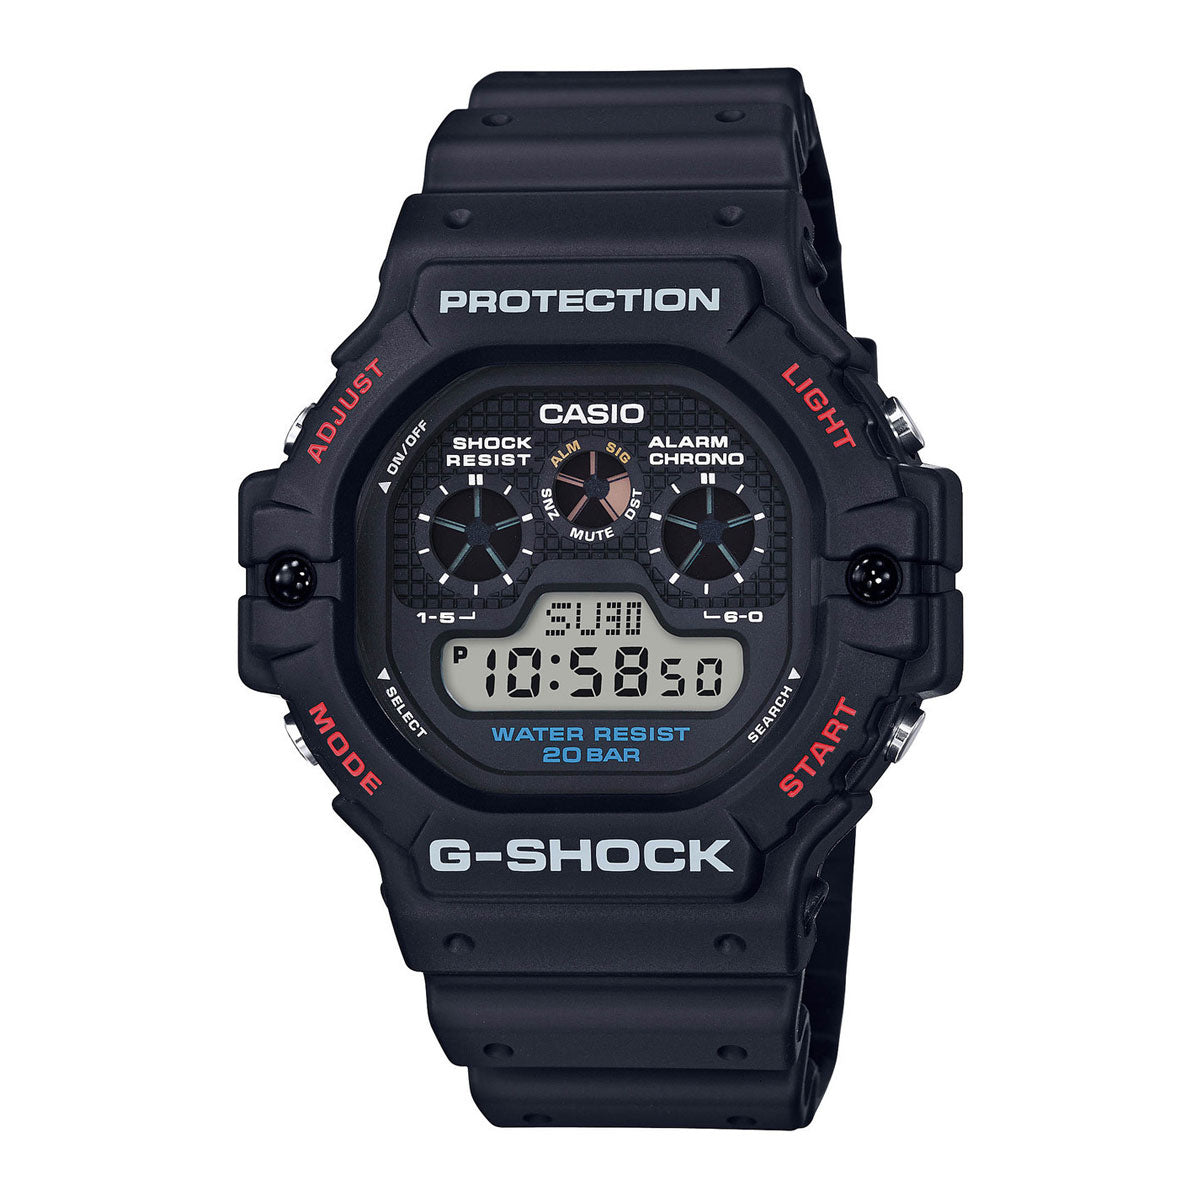 G-Shock: DW-5900-1 Watch - Black